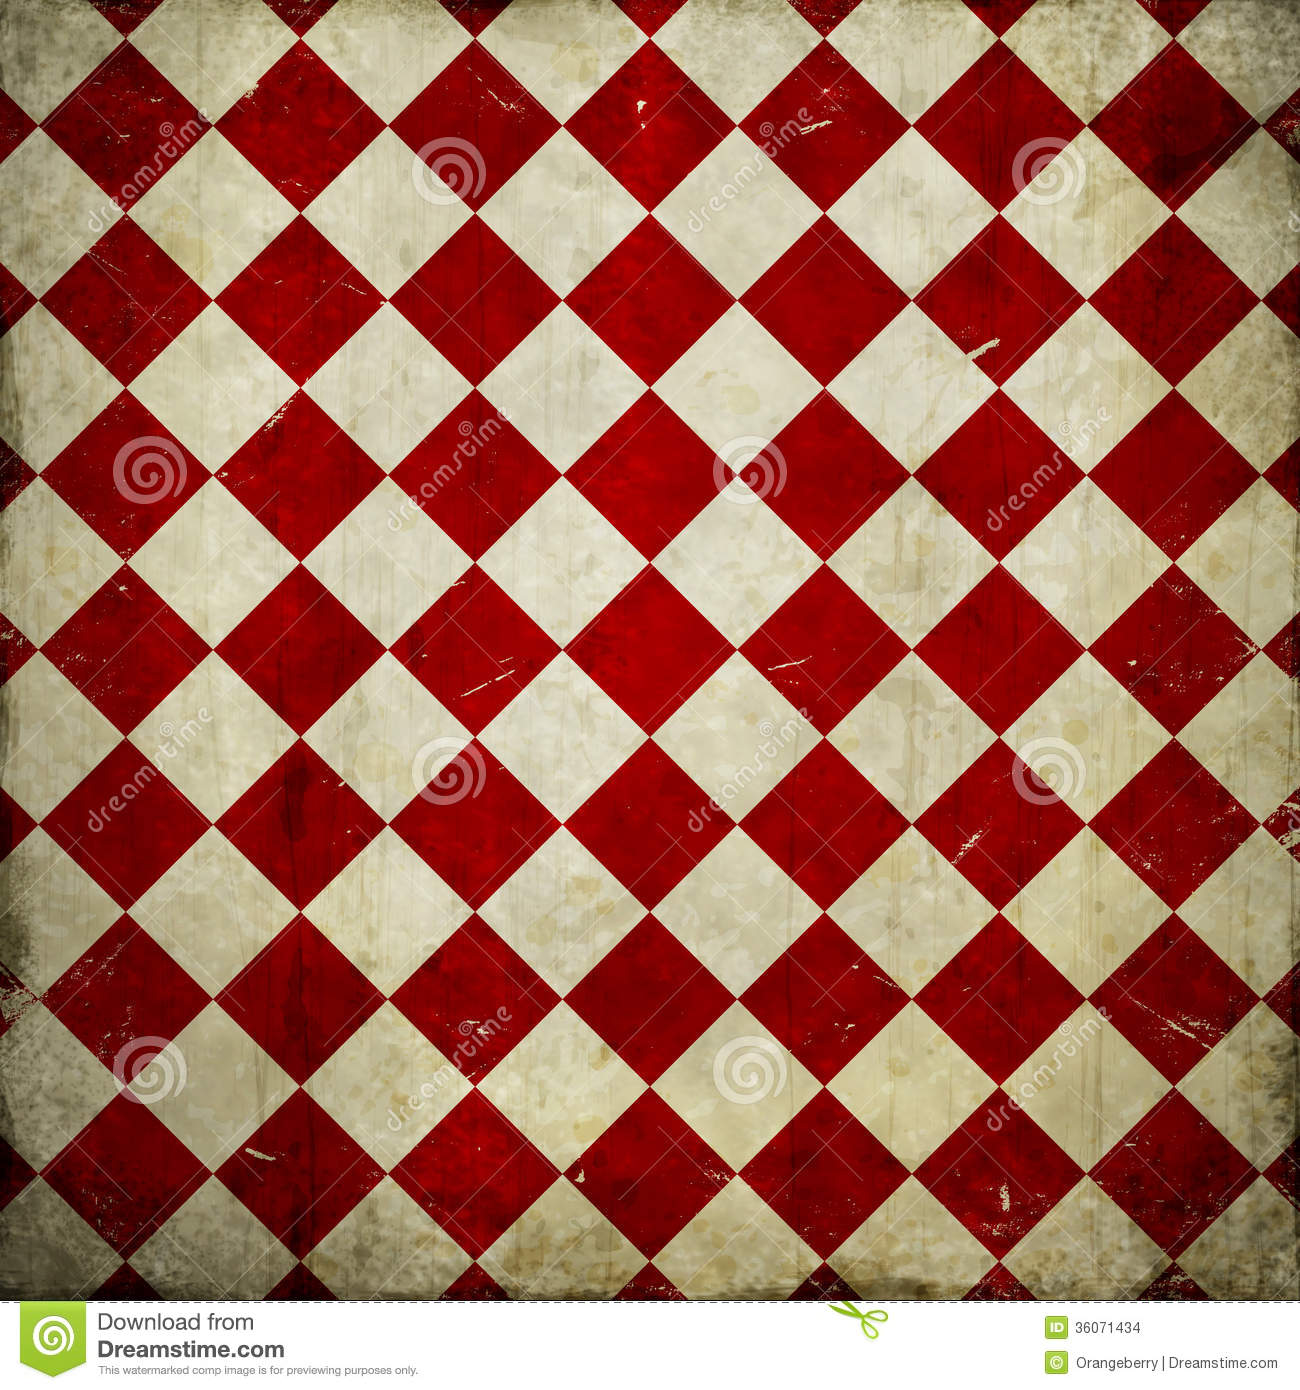 Wooden checker board wooden checkerboard in - Red Grunge Checkered Background Stock Images Image 36071434